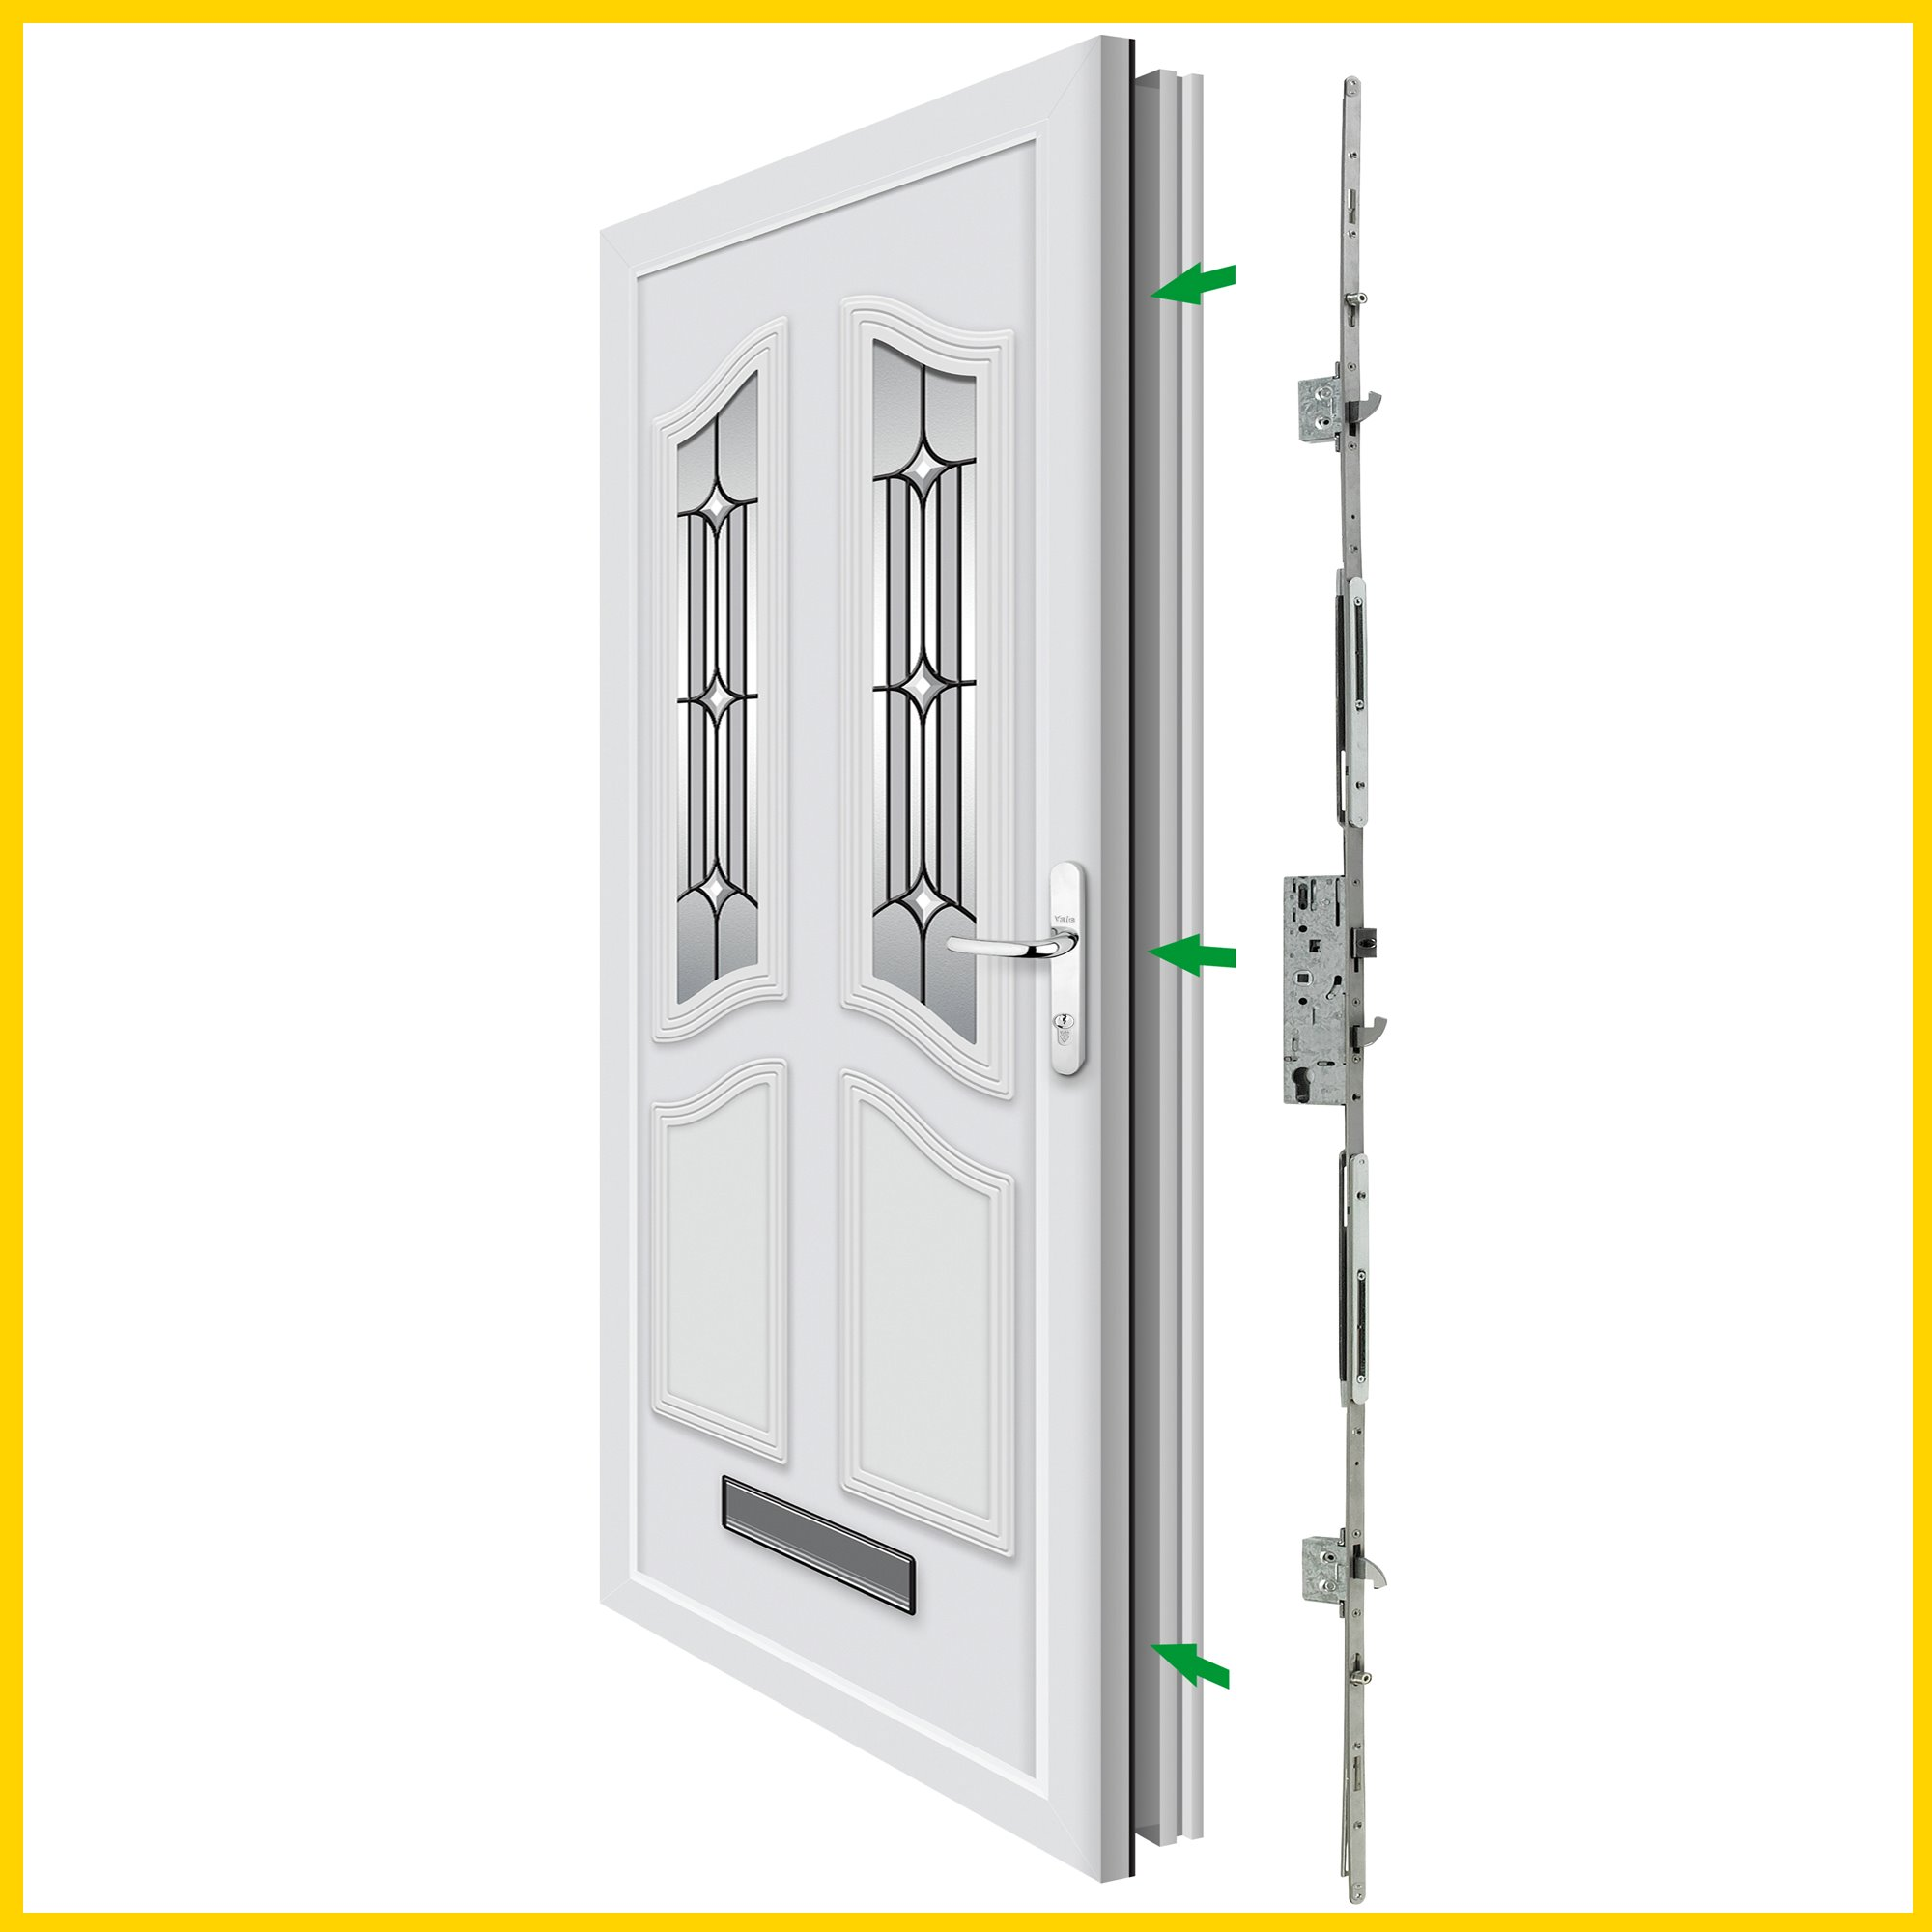 Doormaster™ Multi-Point Locks